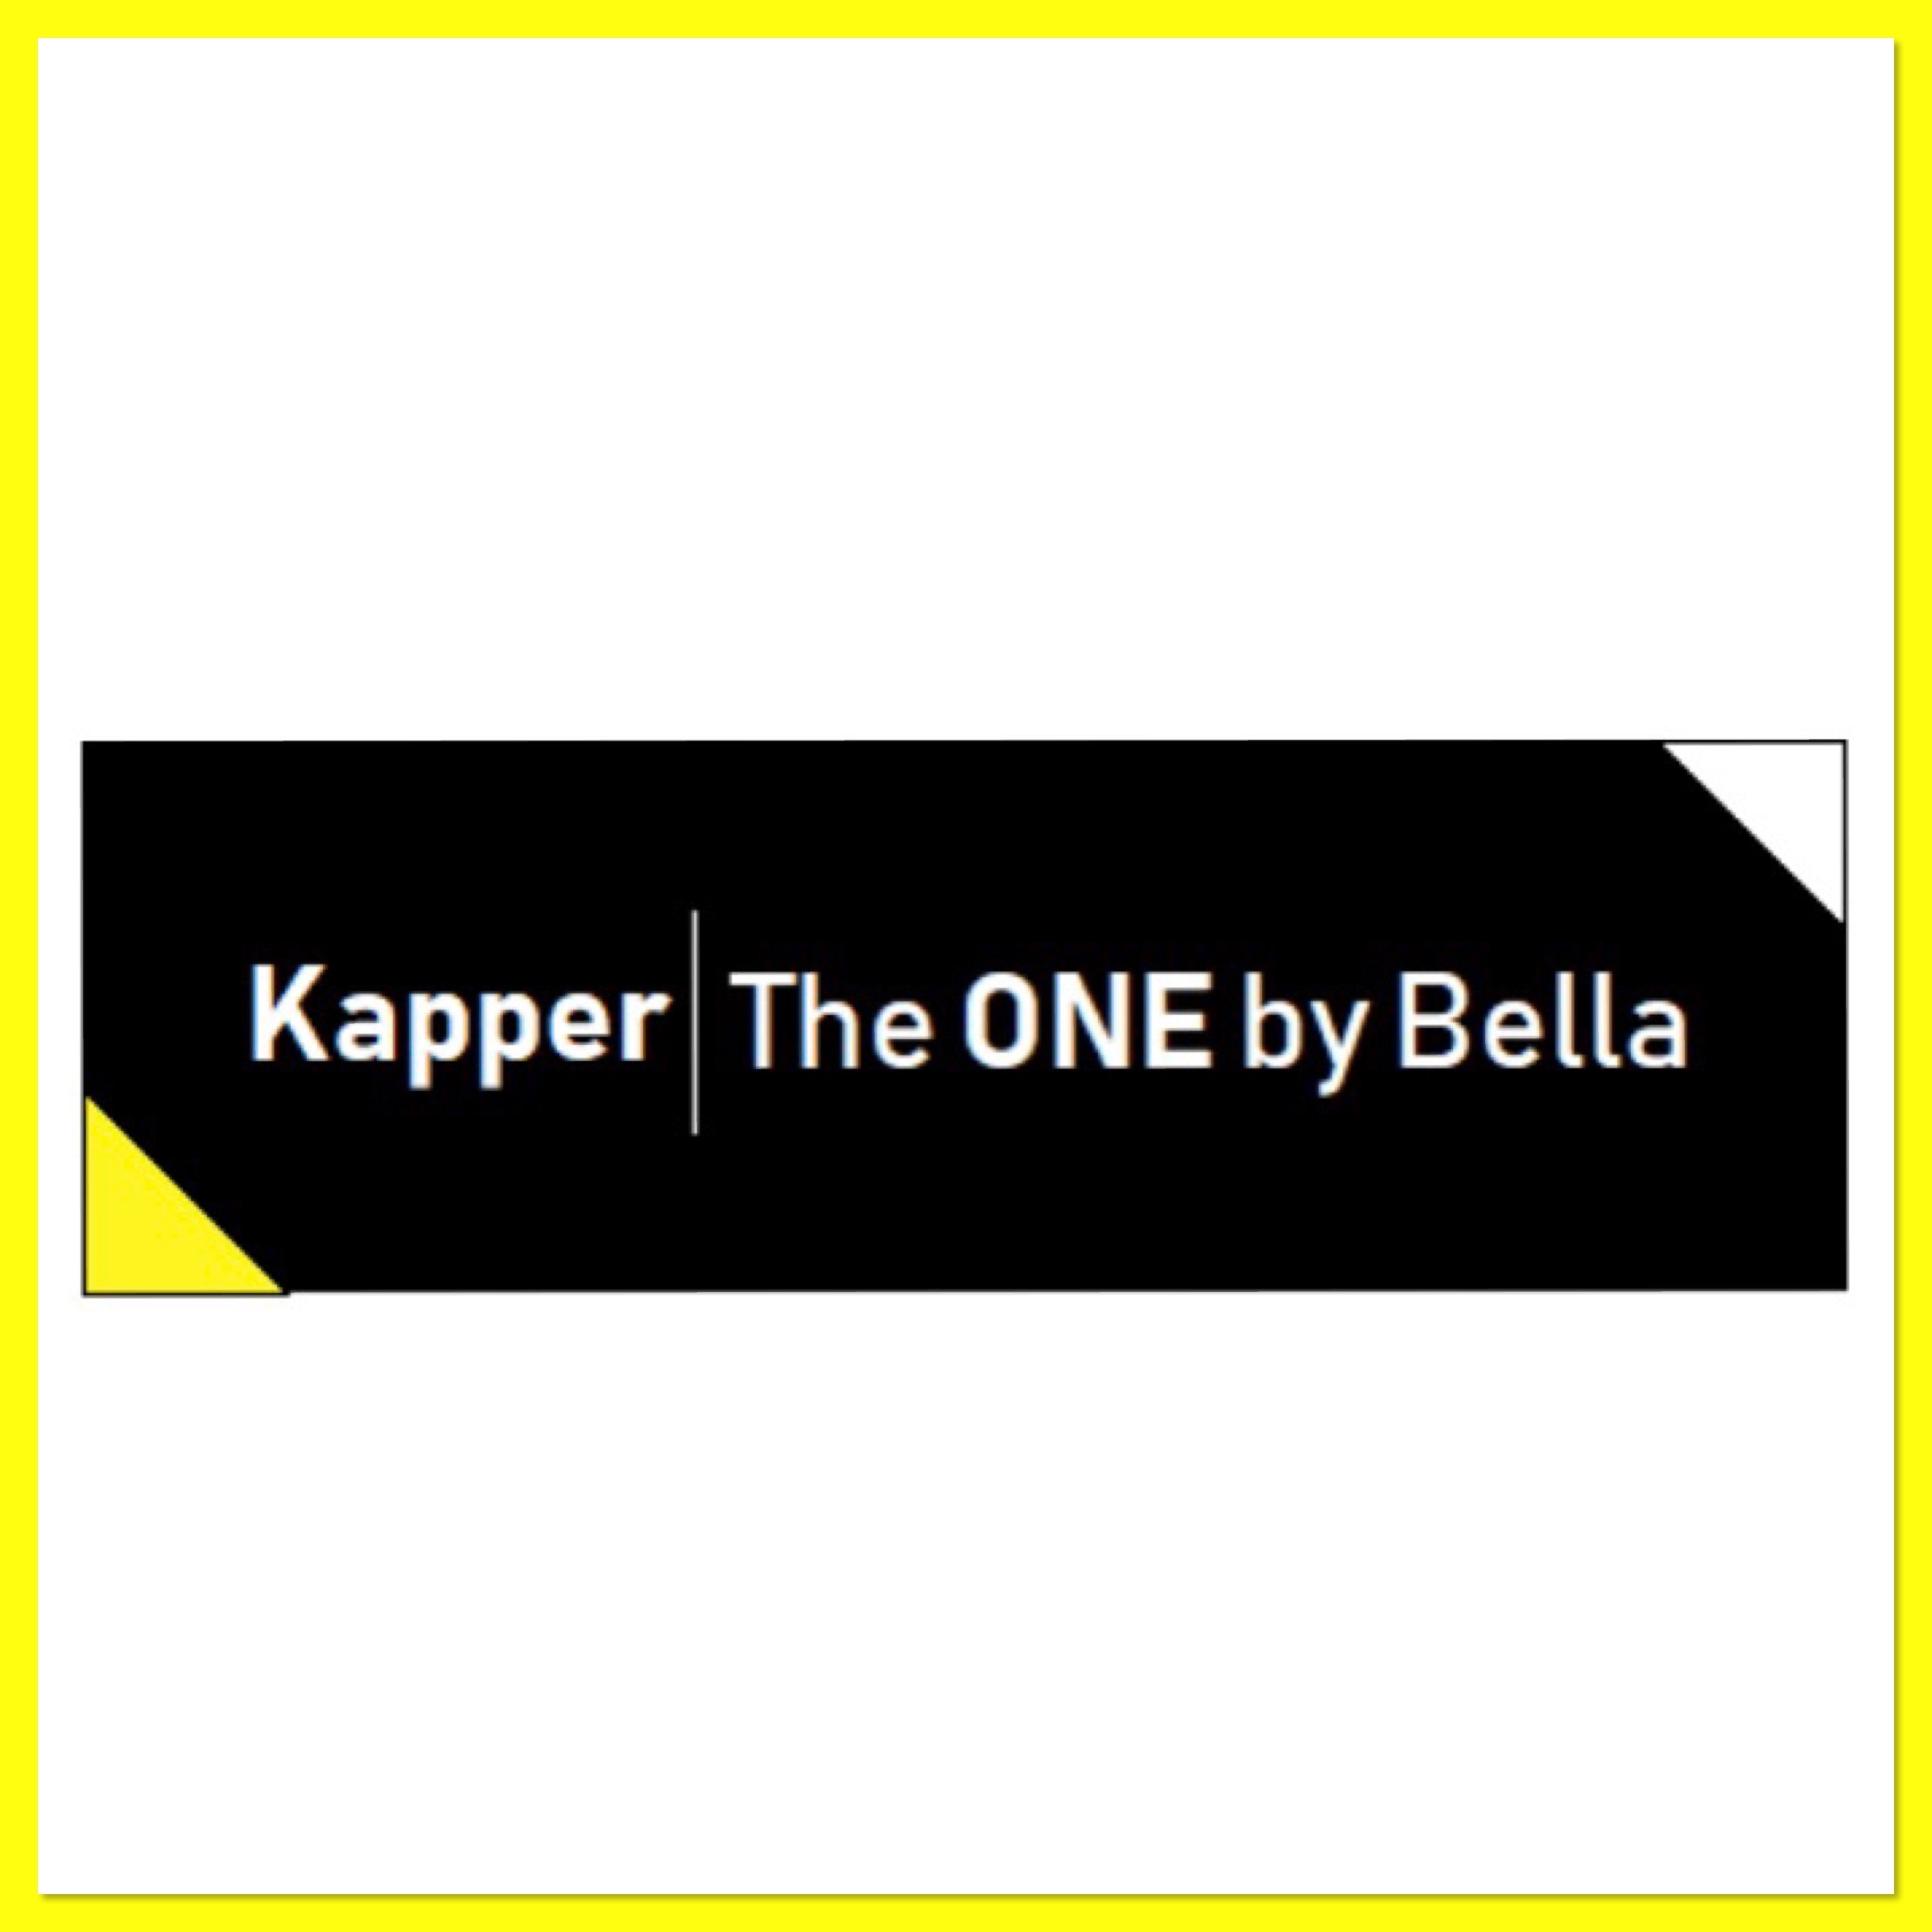 The one by bella